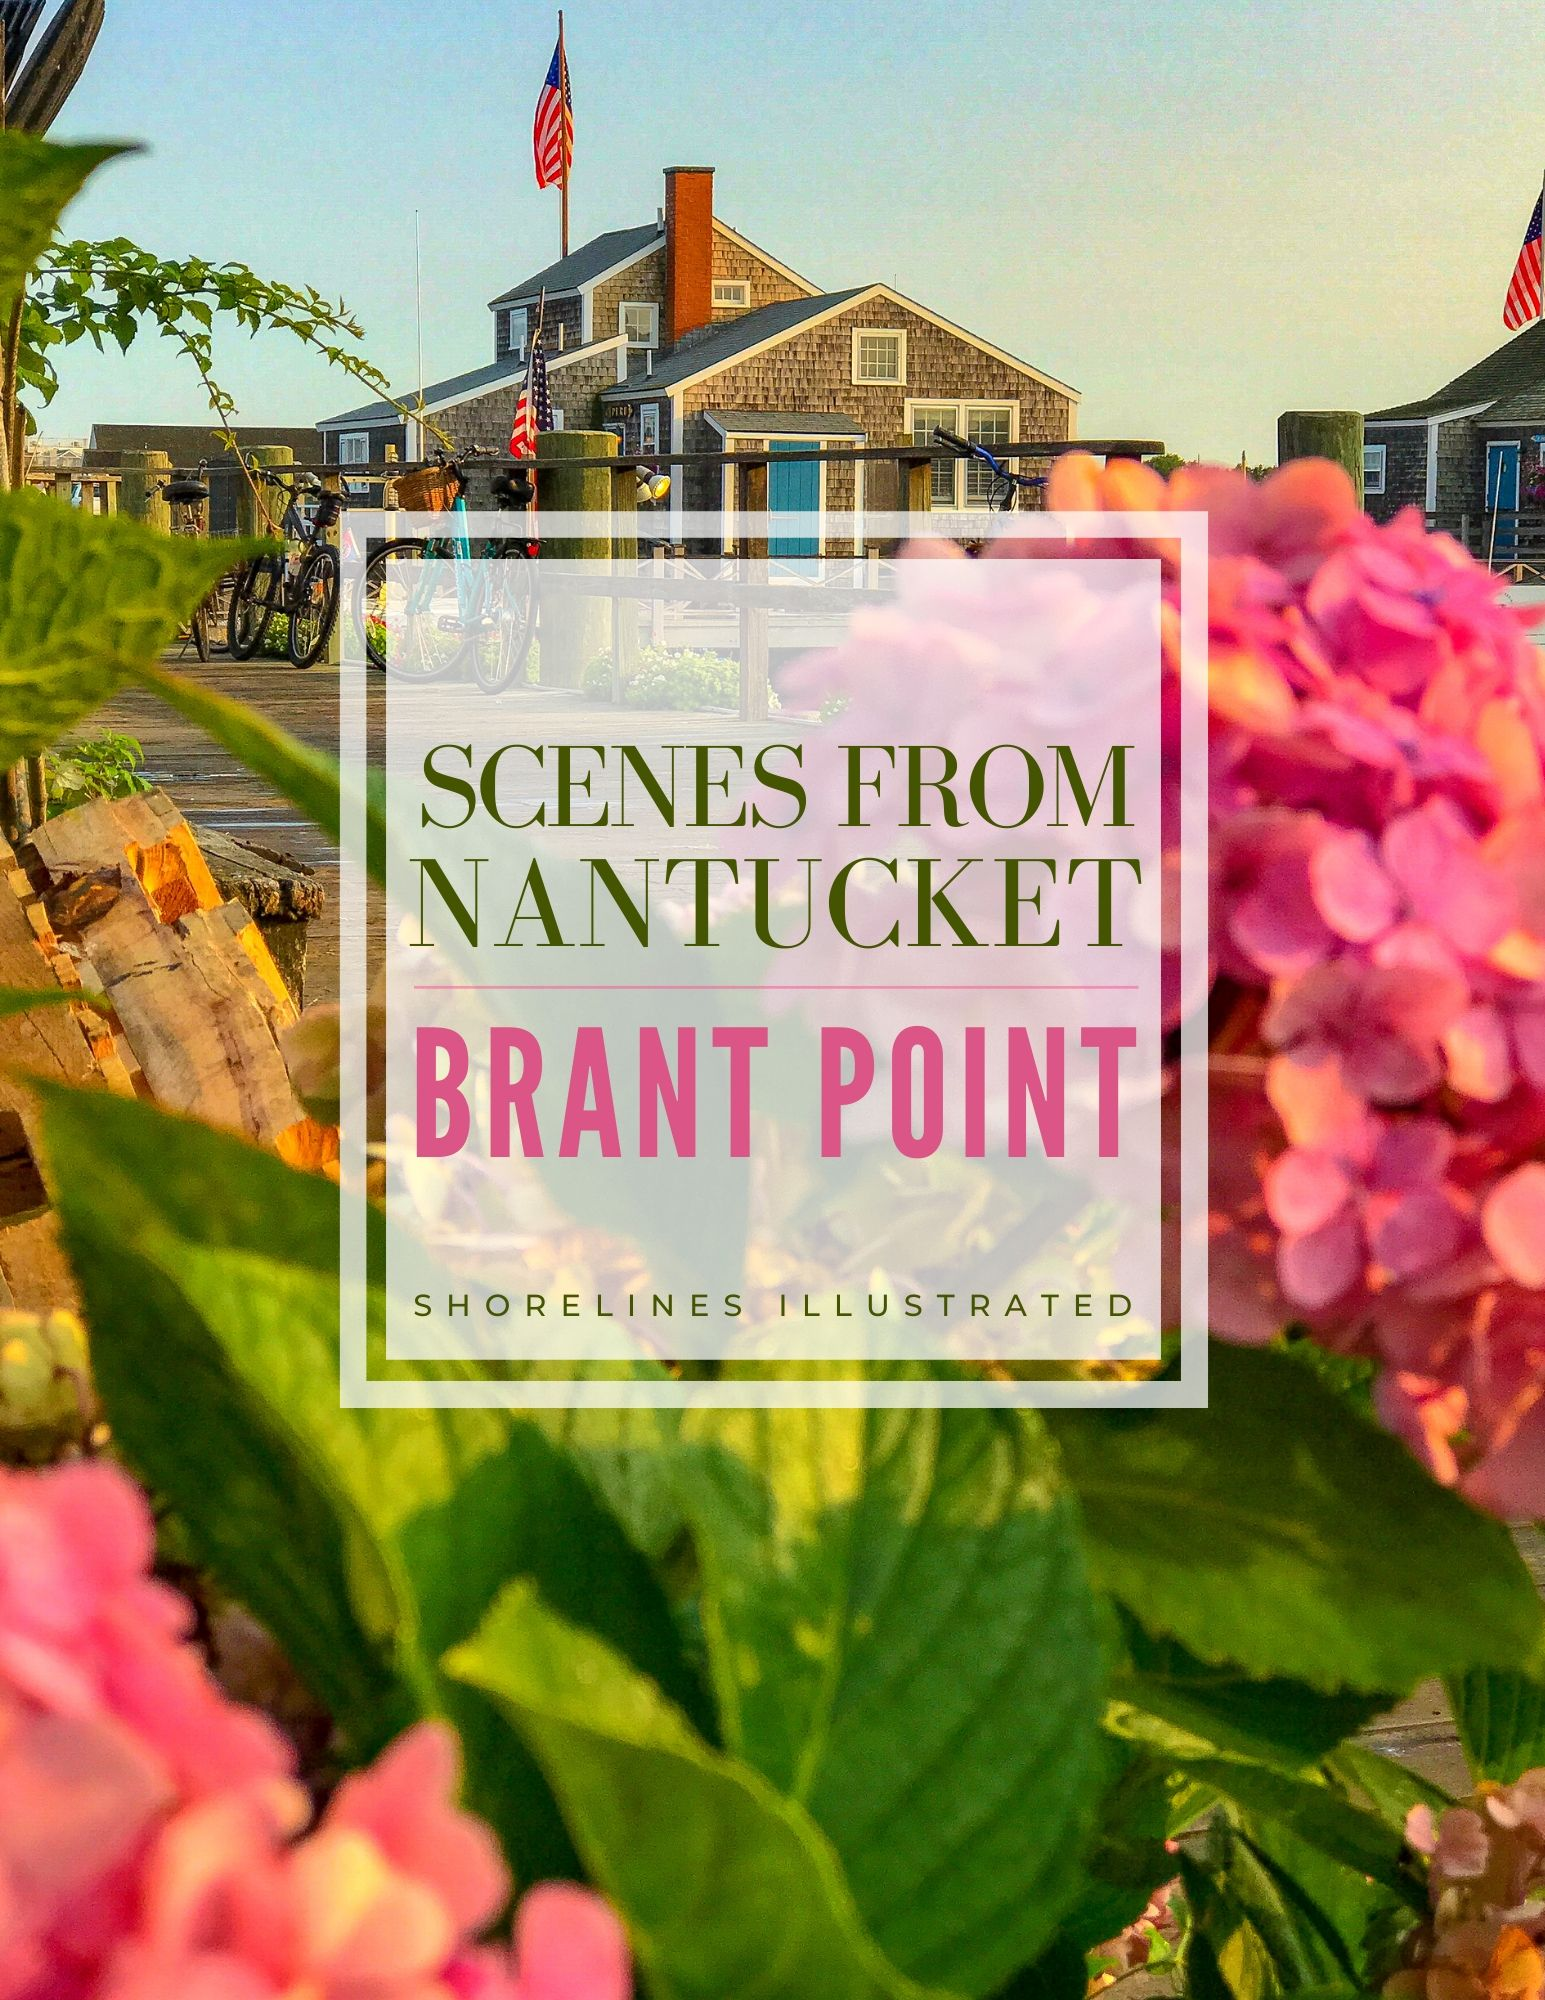 Scenes from Nantucket Brant Point-1